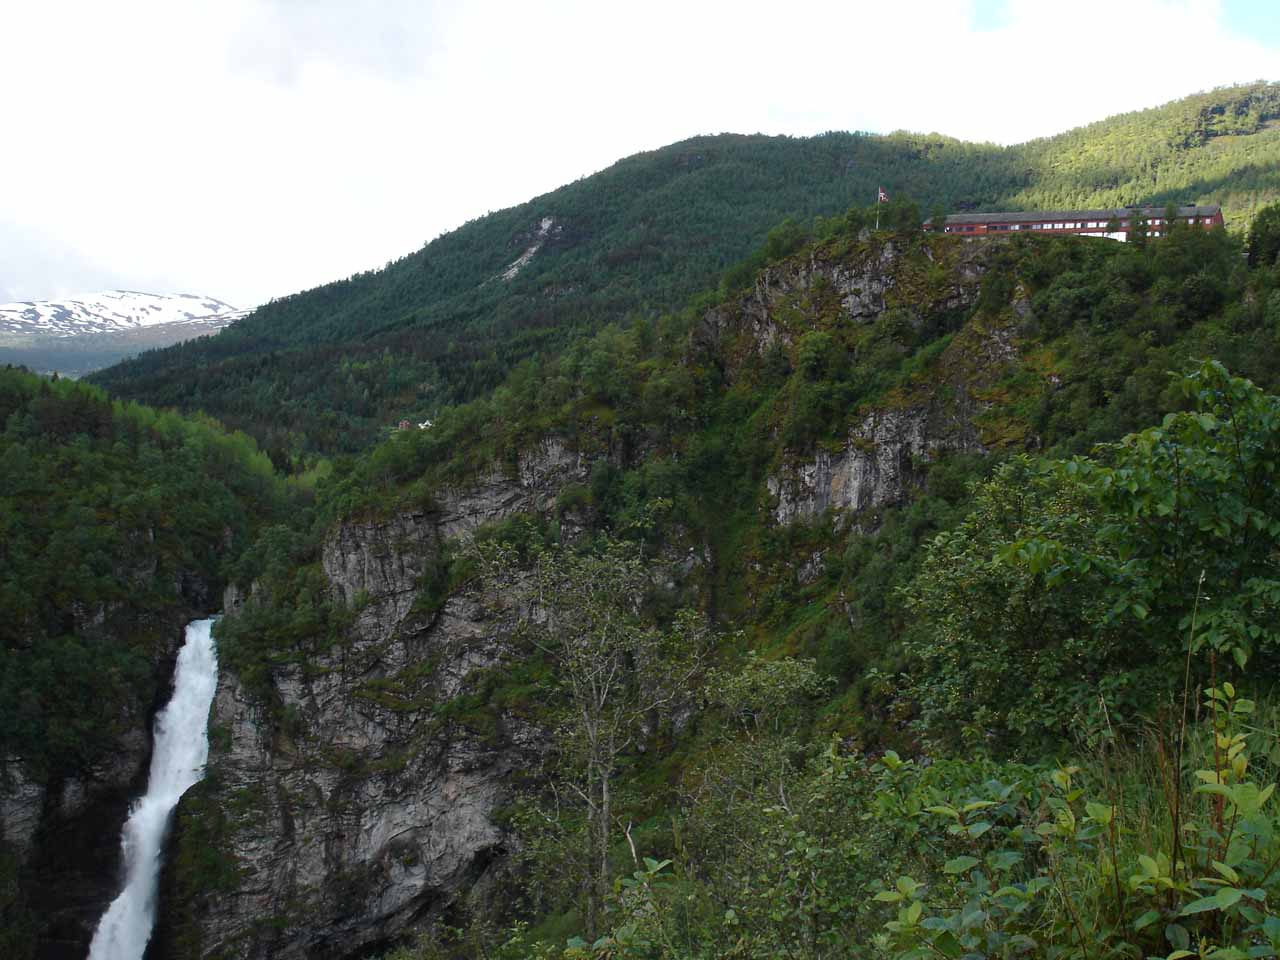 Looking back at Stalheimsfossen and the Stalheim Hotel